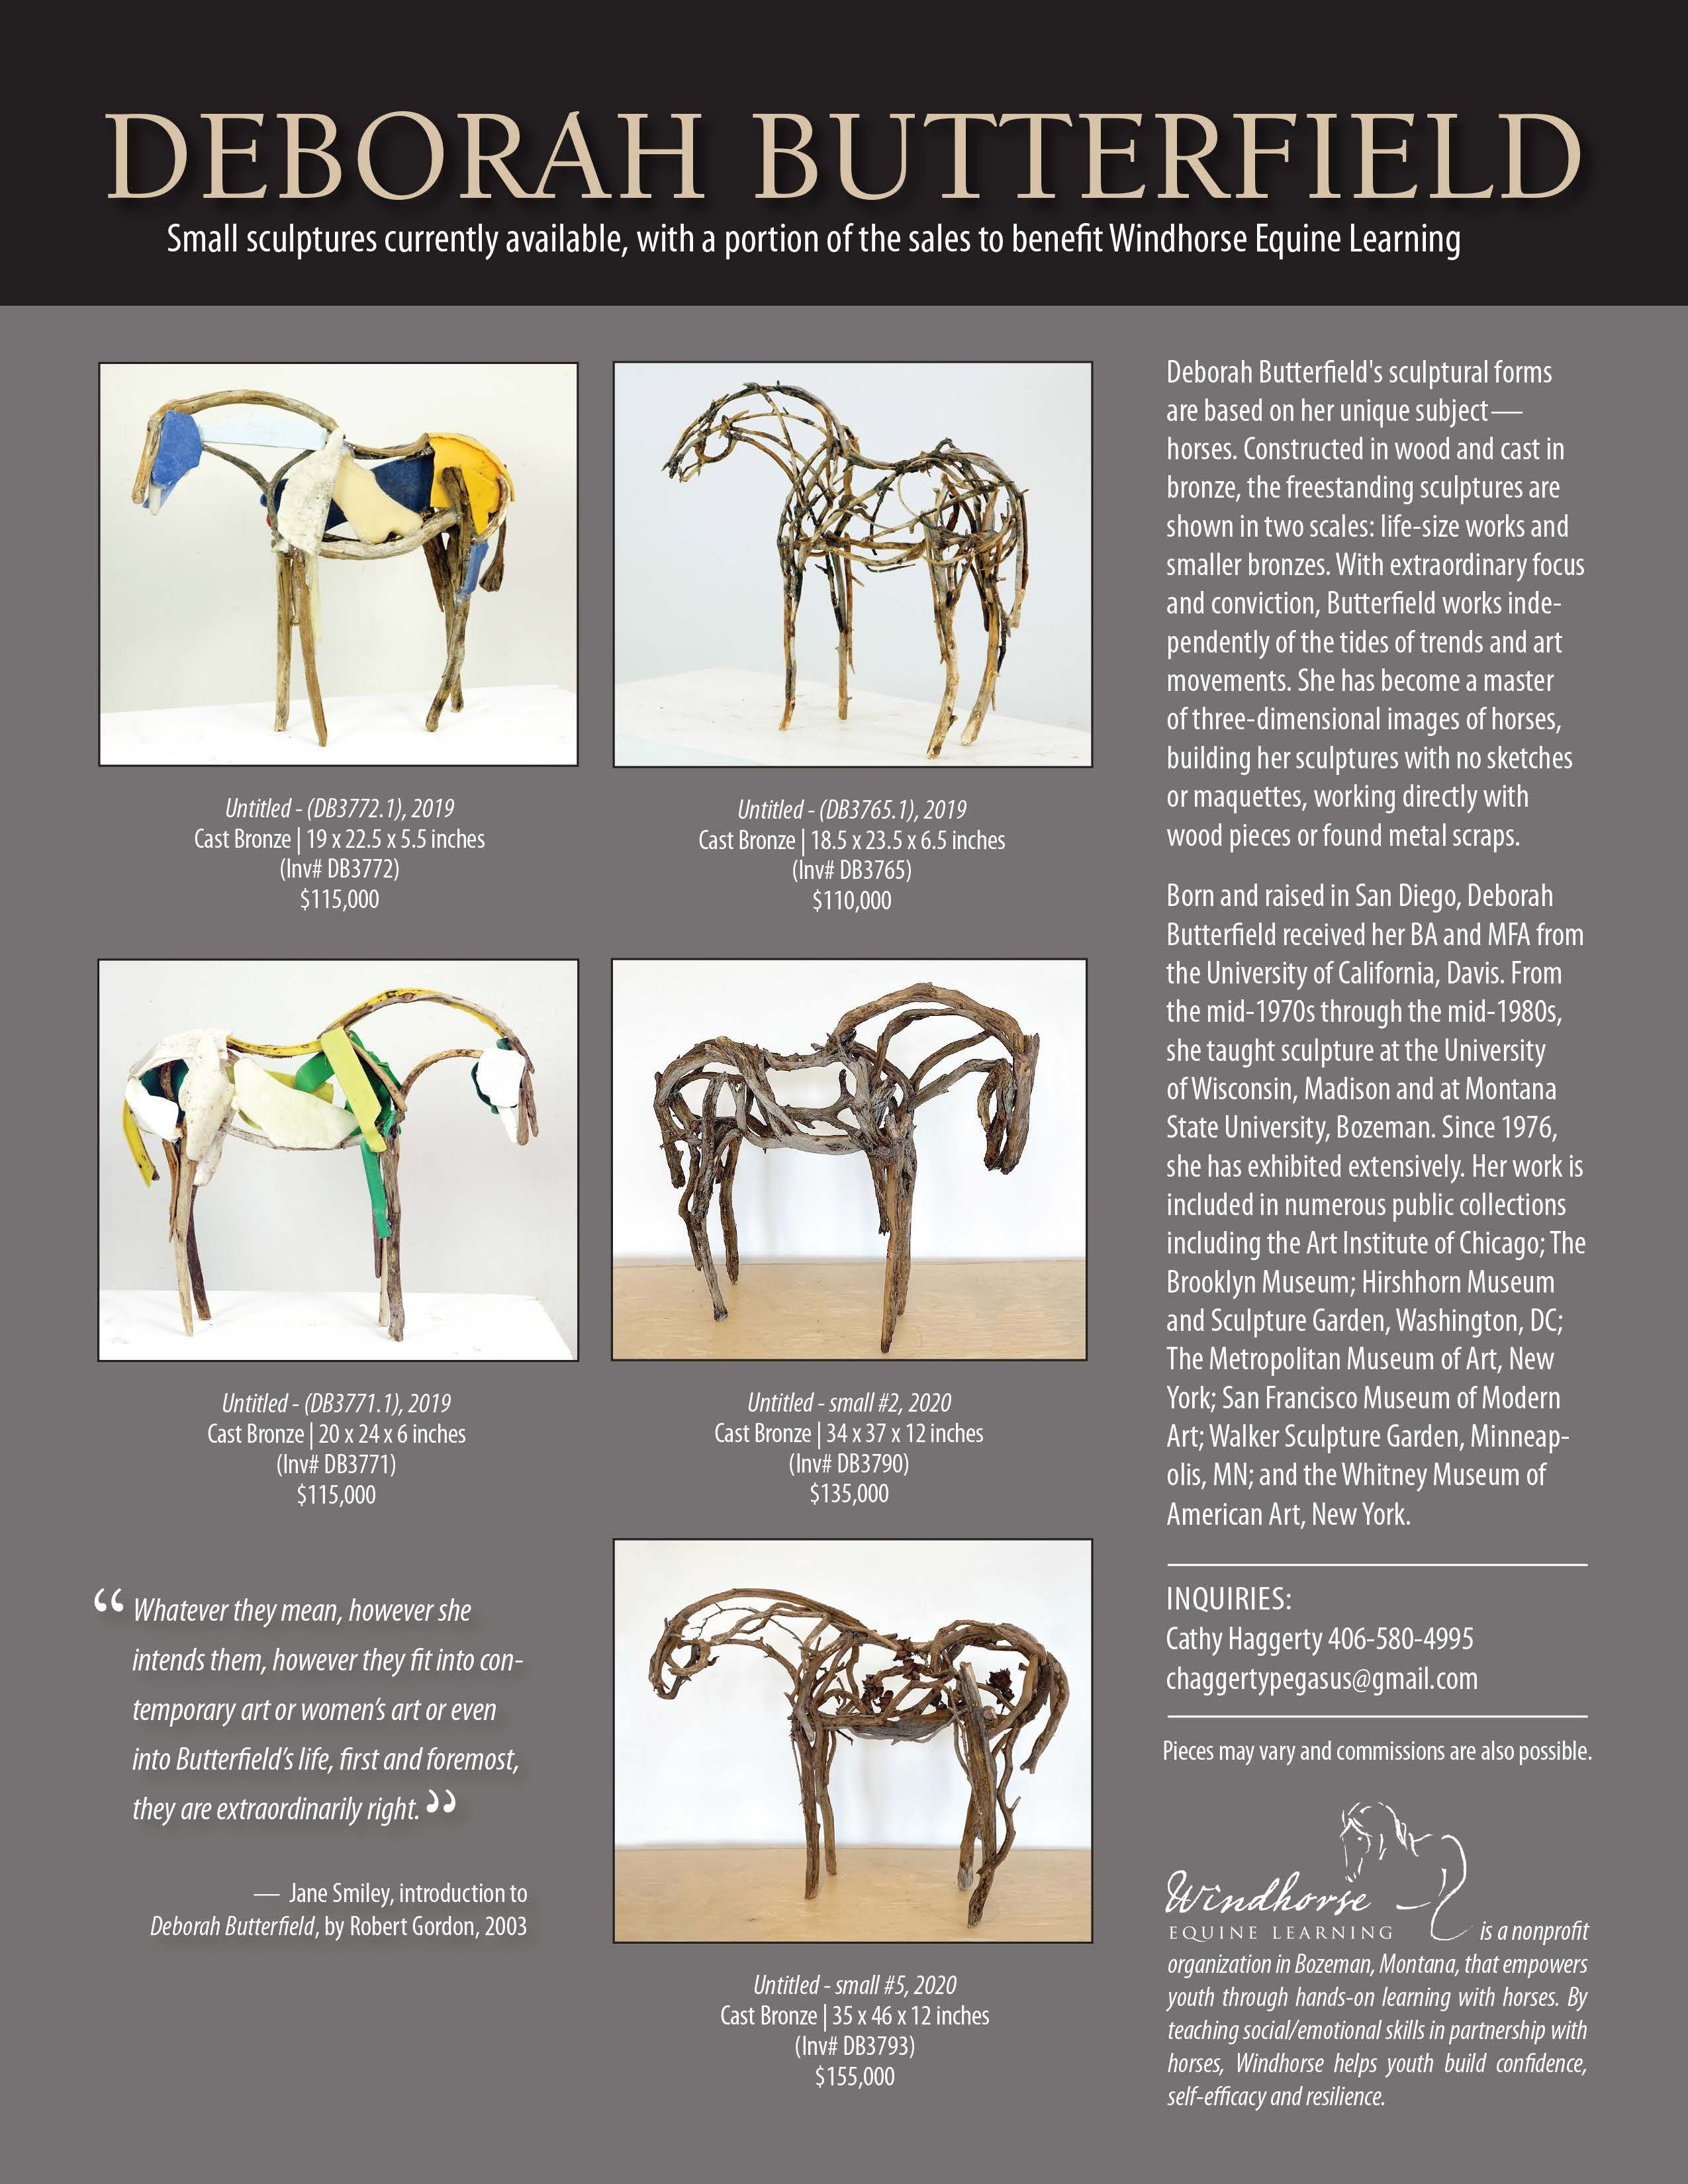 Purchase a Unique Deborah Butterfield Sculpture and Support Windhorse